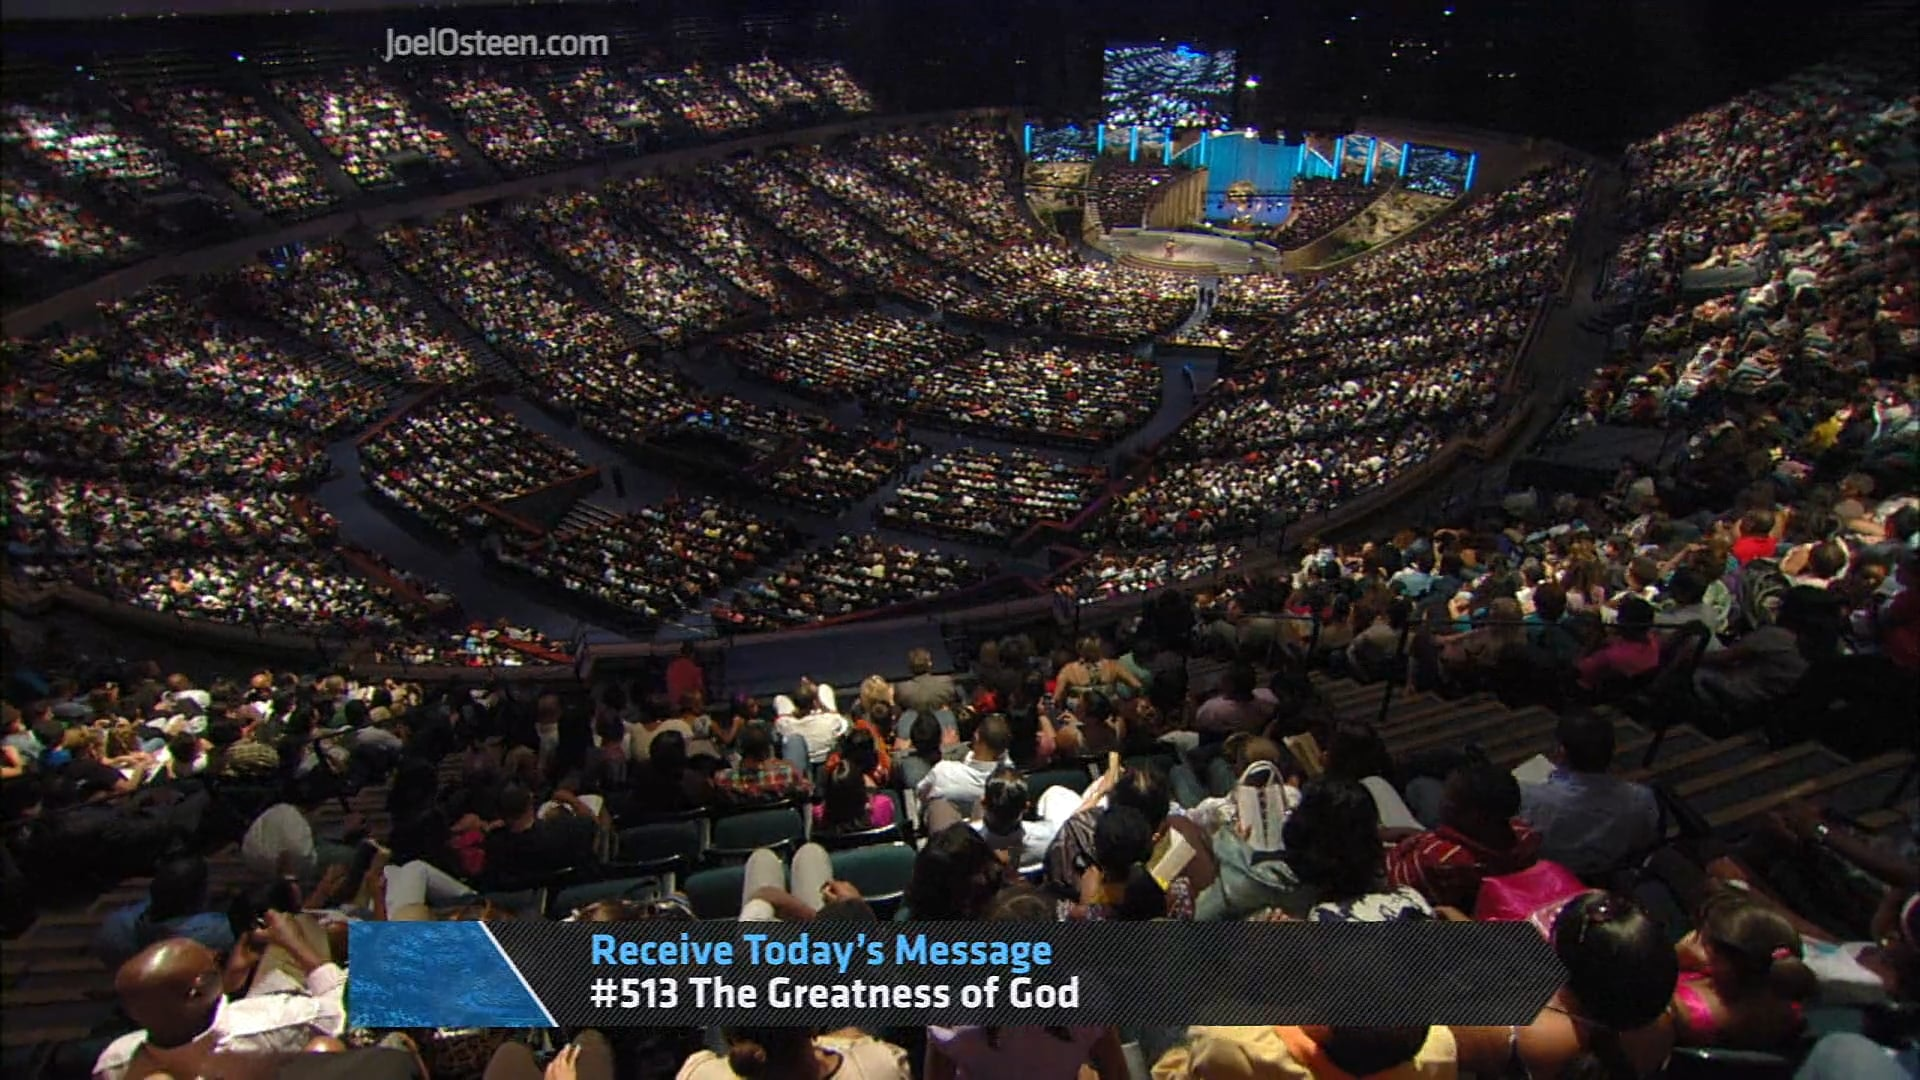 Watch The Greatness of God